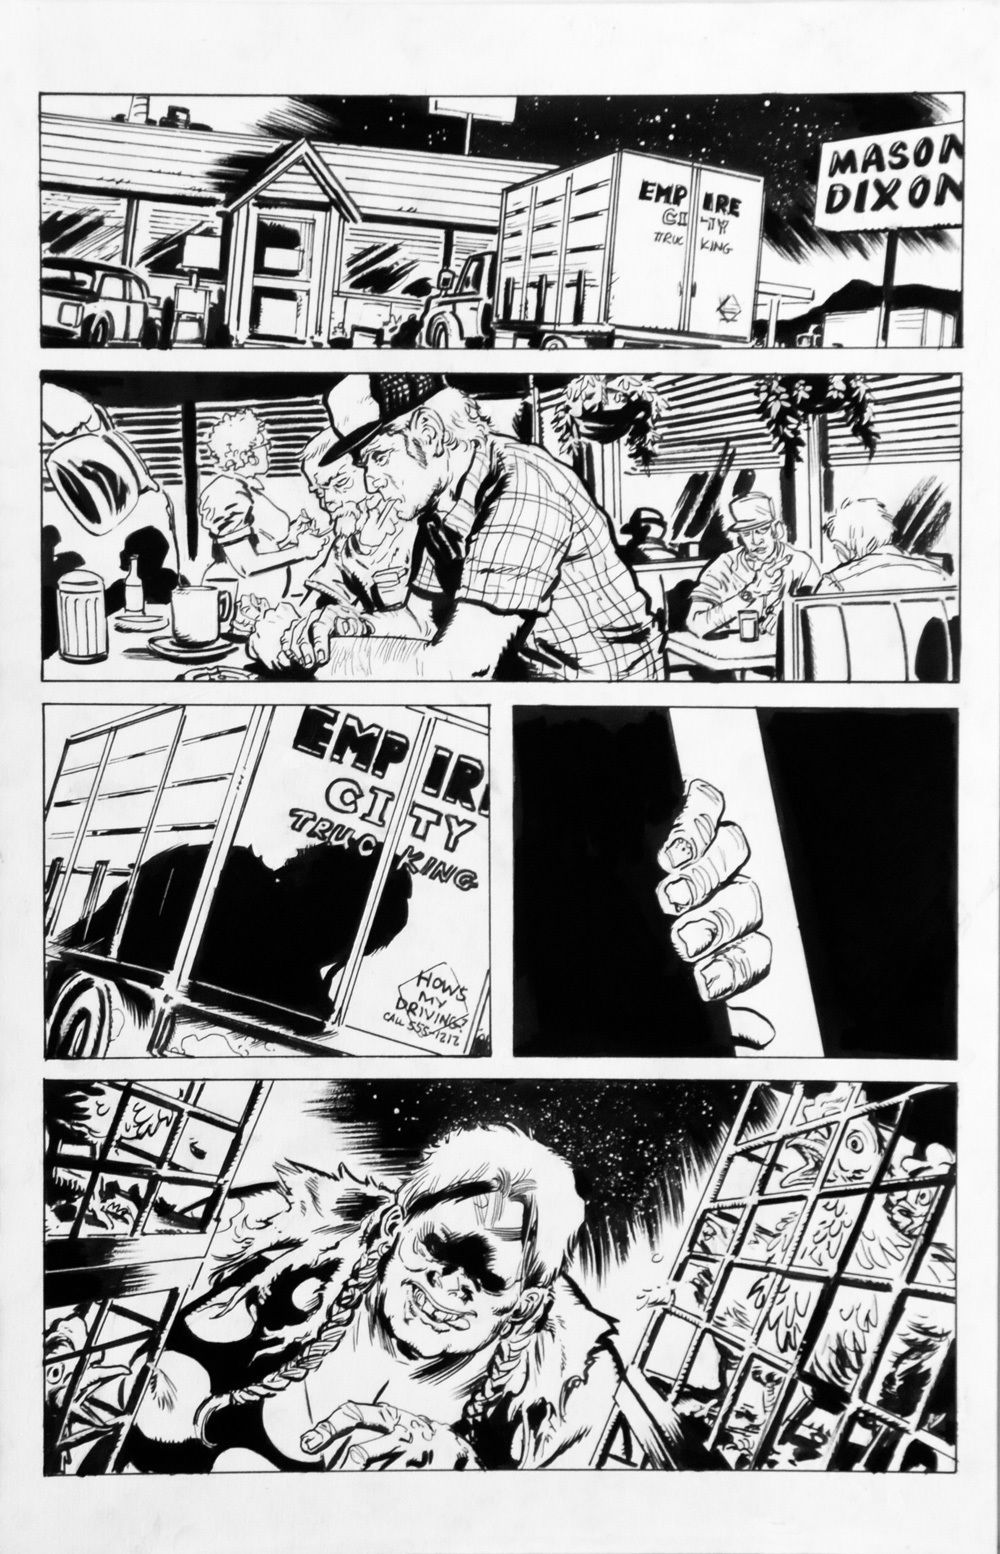 DEAN KOTZ Original Published Art, TRAILER PARK of TERROR #9 page 31, Zombies